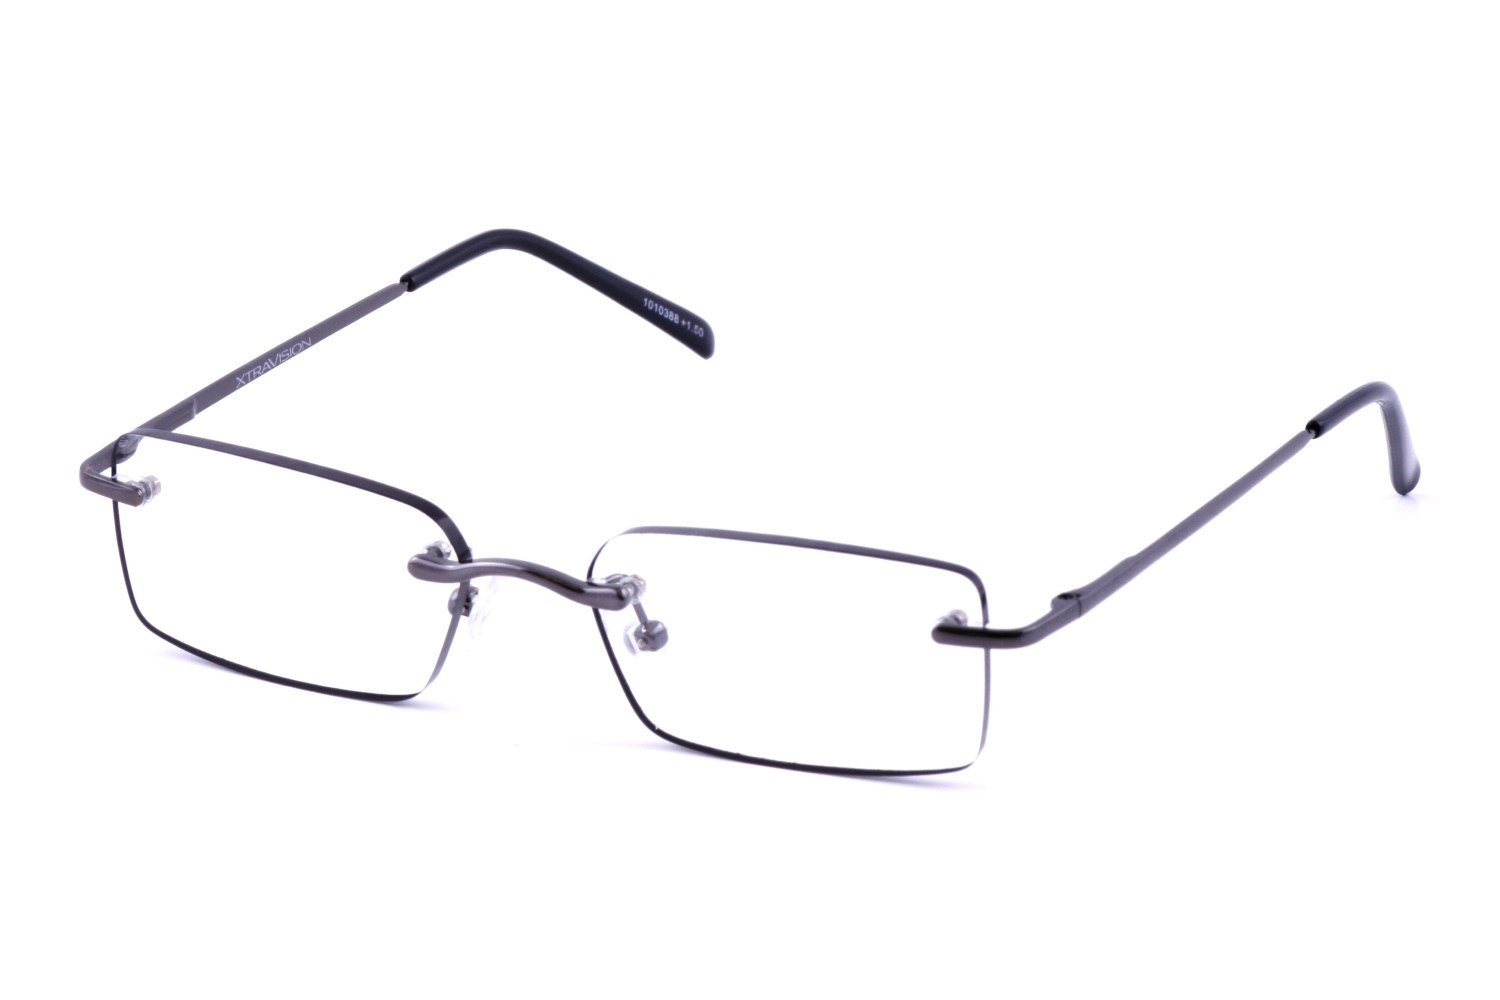 Reading Glasses No Frame : Xtravision Composer Mens Rimless Readers with Cases (2 ...